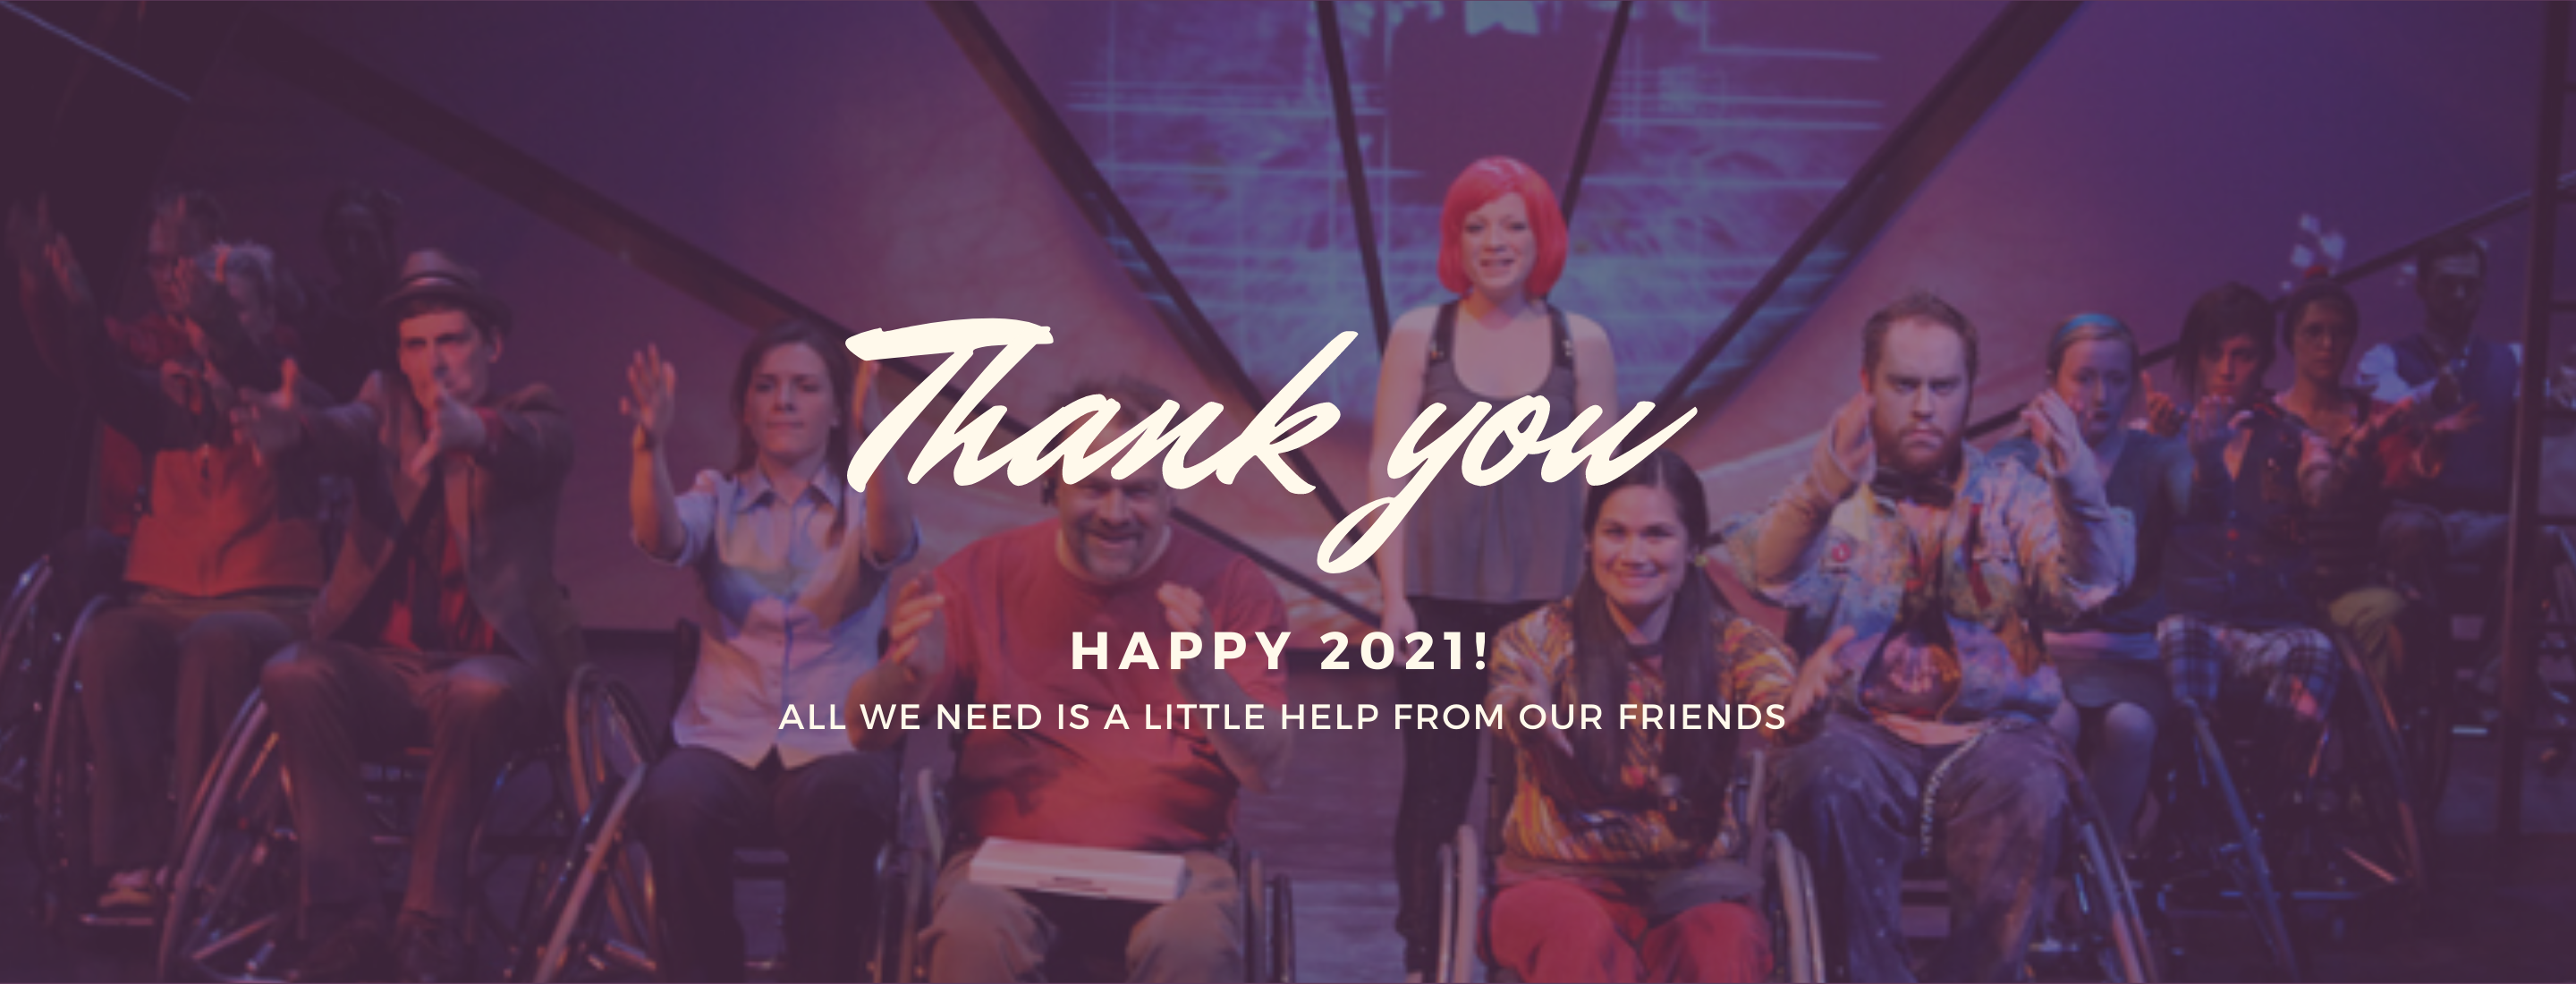 """A cropped colour photo of smiling performers with arms outstretched, taken from the production of Spine. Text overlaid reads: """"Thank you Happy 2021! All we need is a little help from our friends."""""""